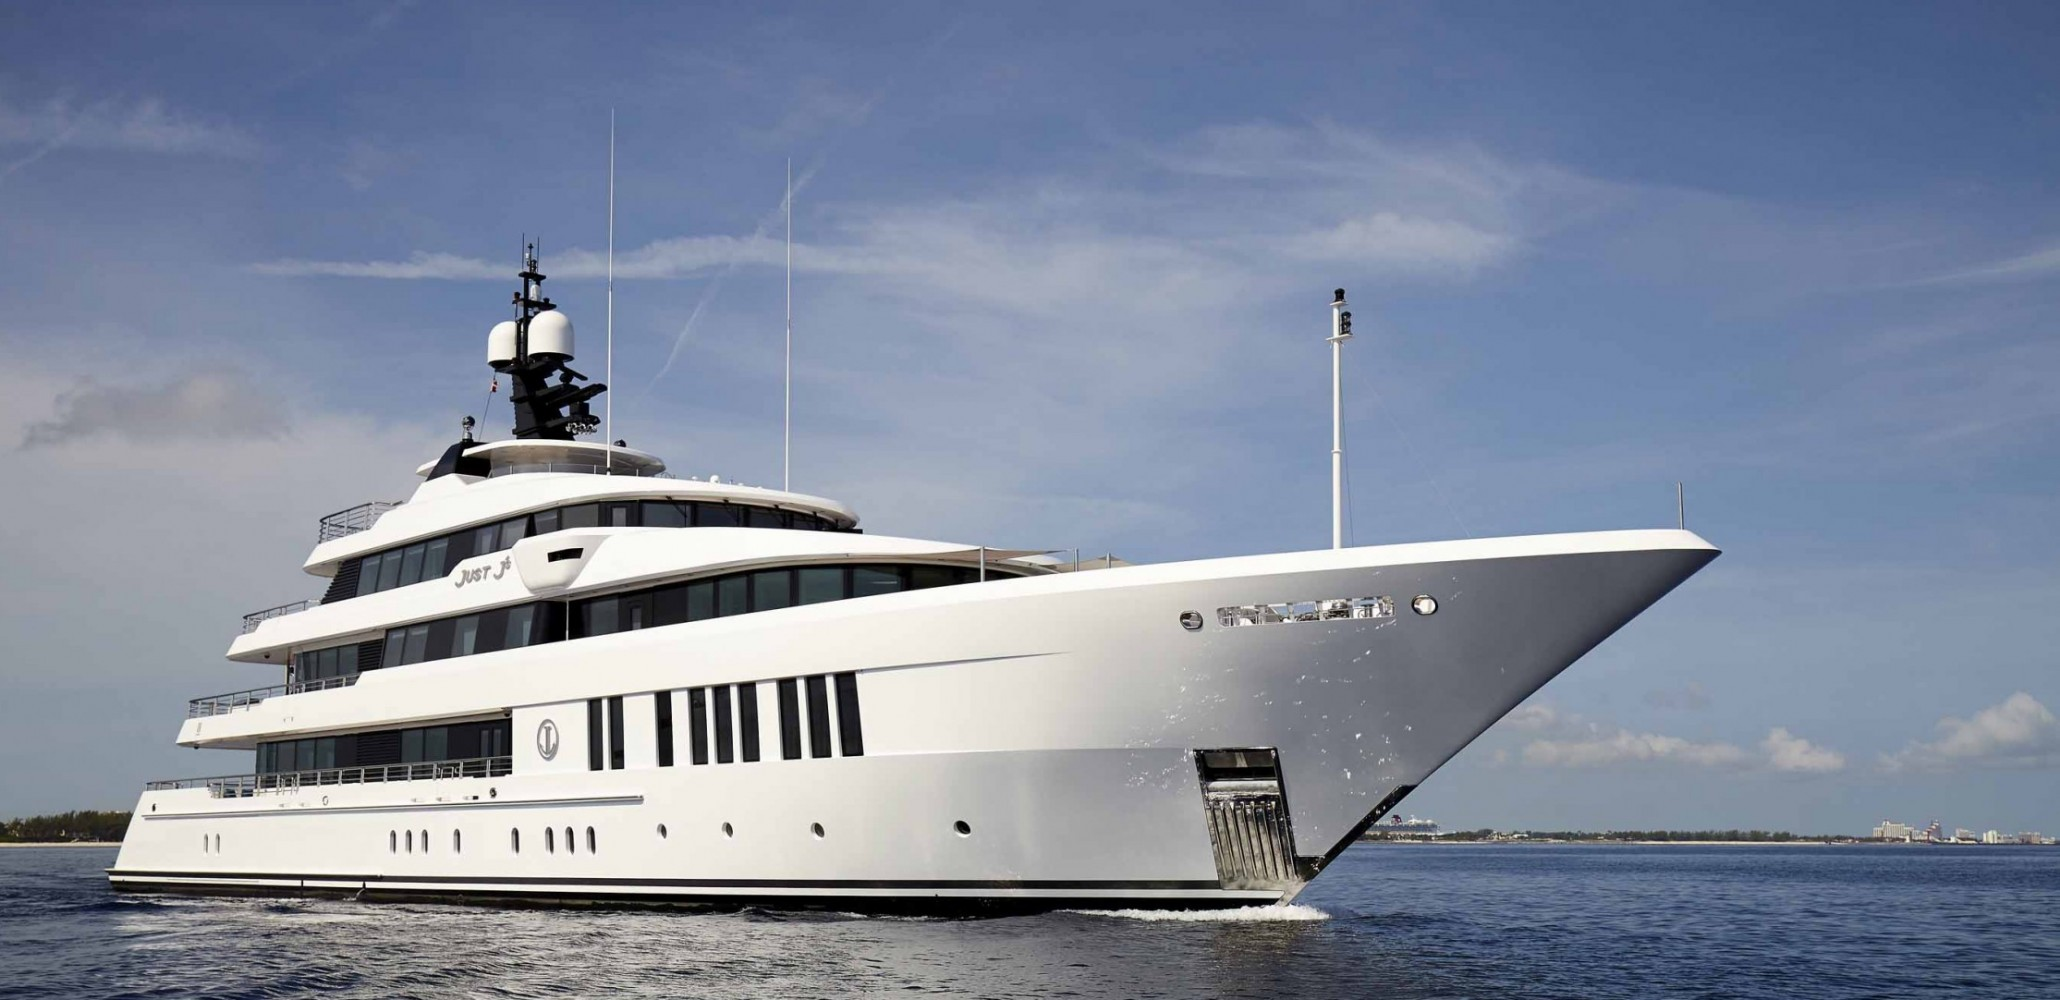 hakvoort shipyards  we know what it takes to build great yachts